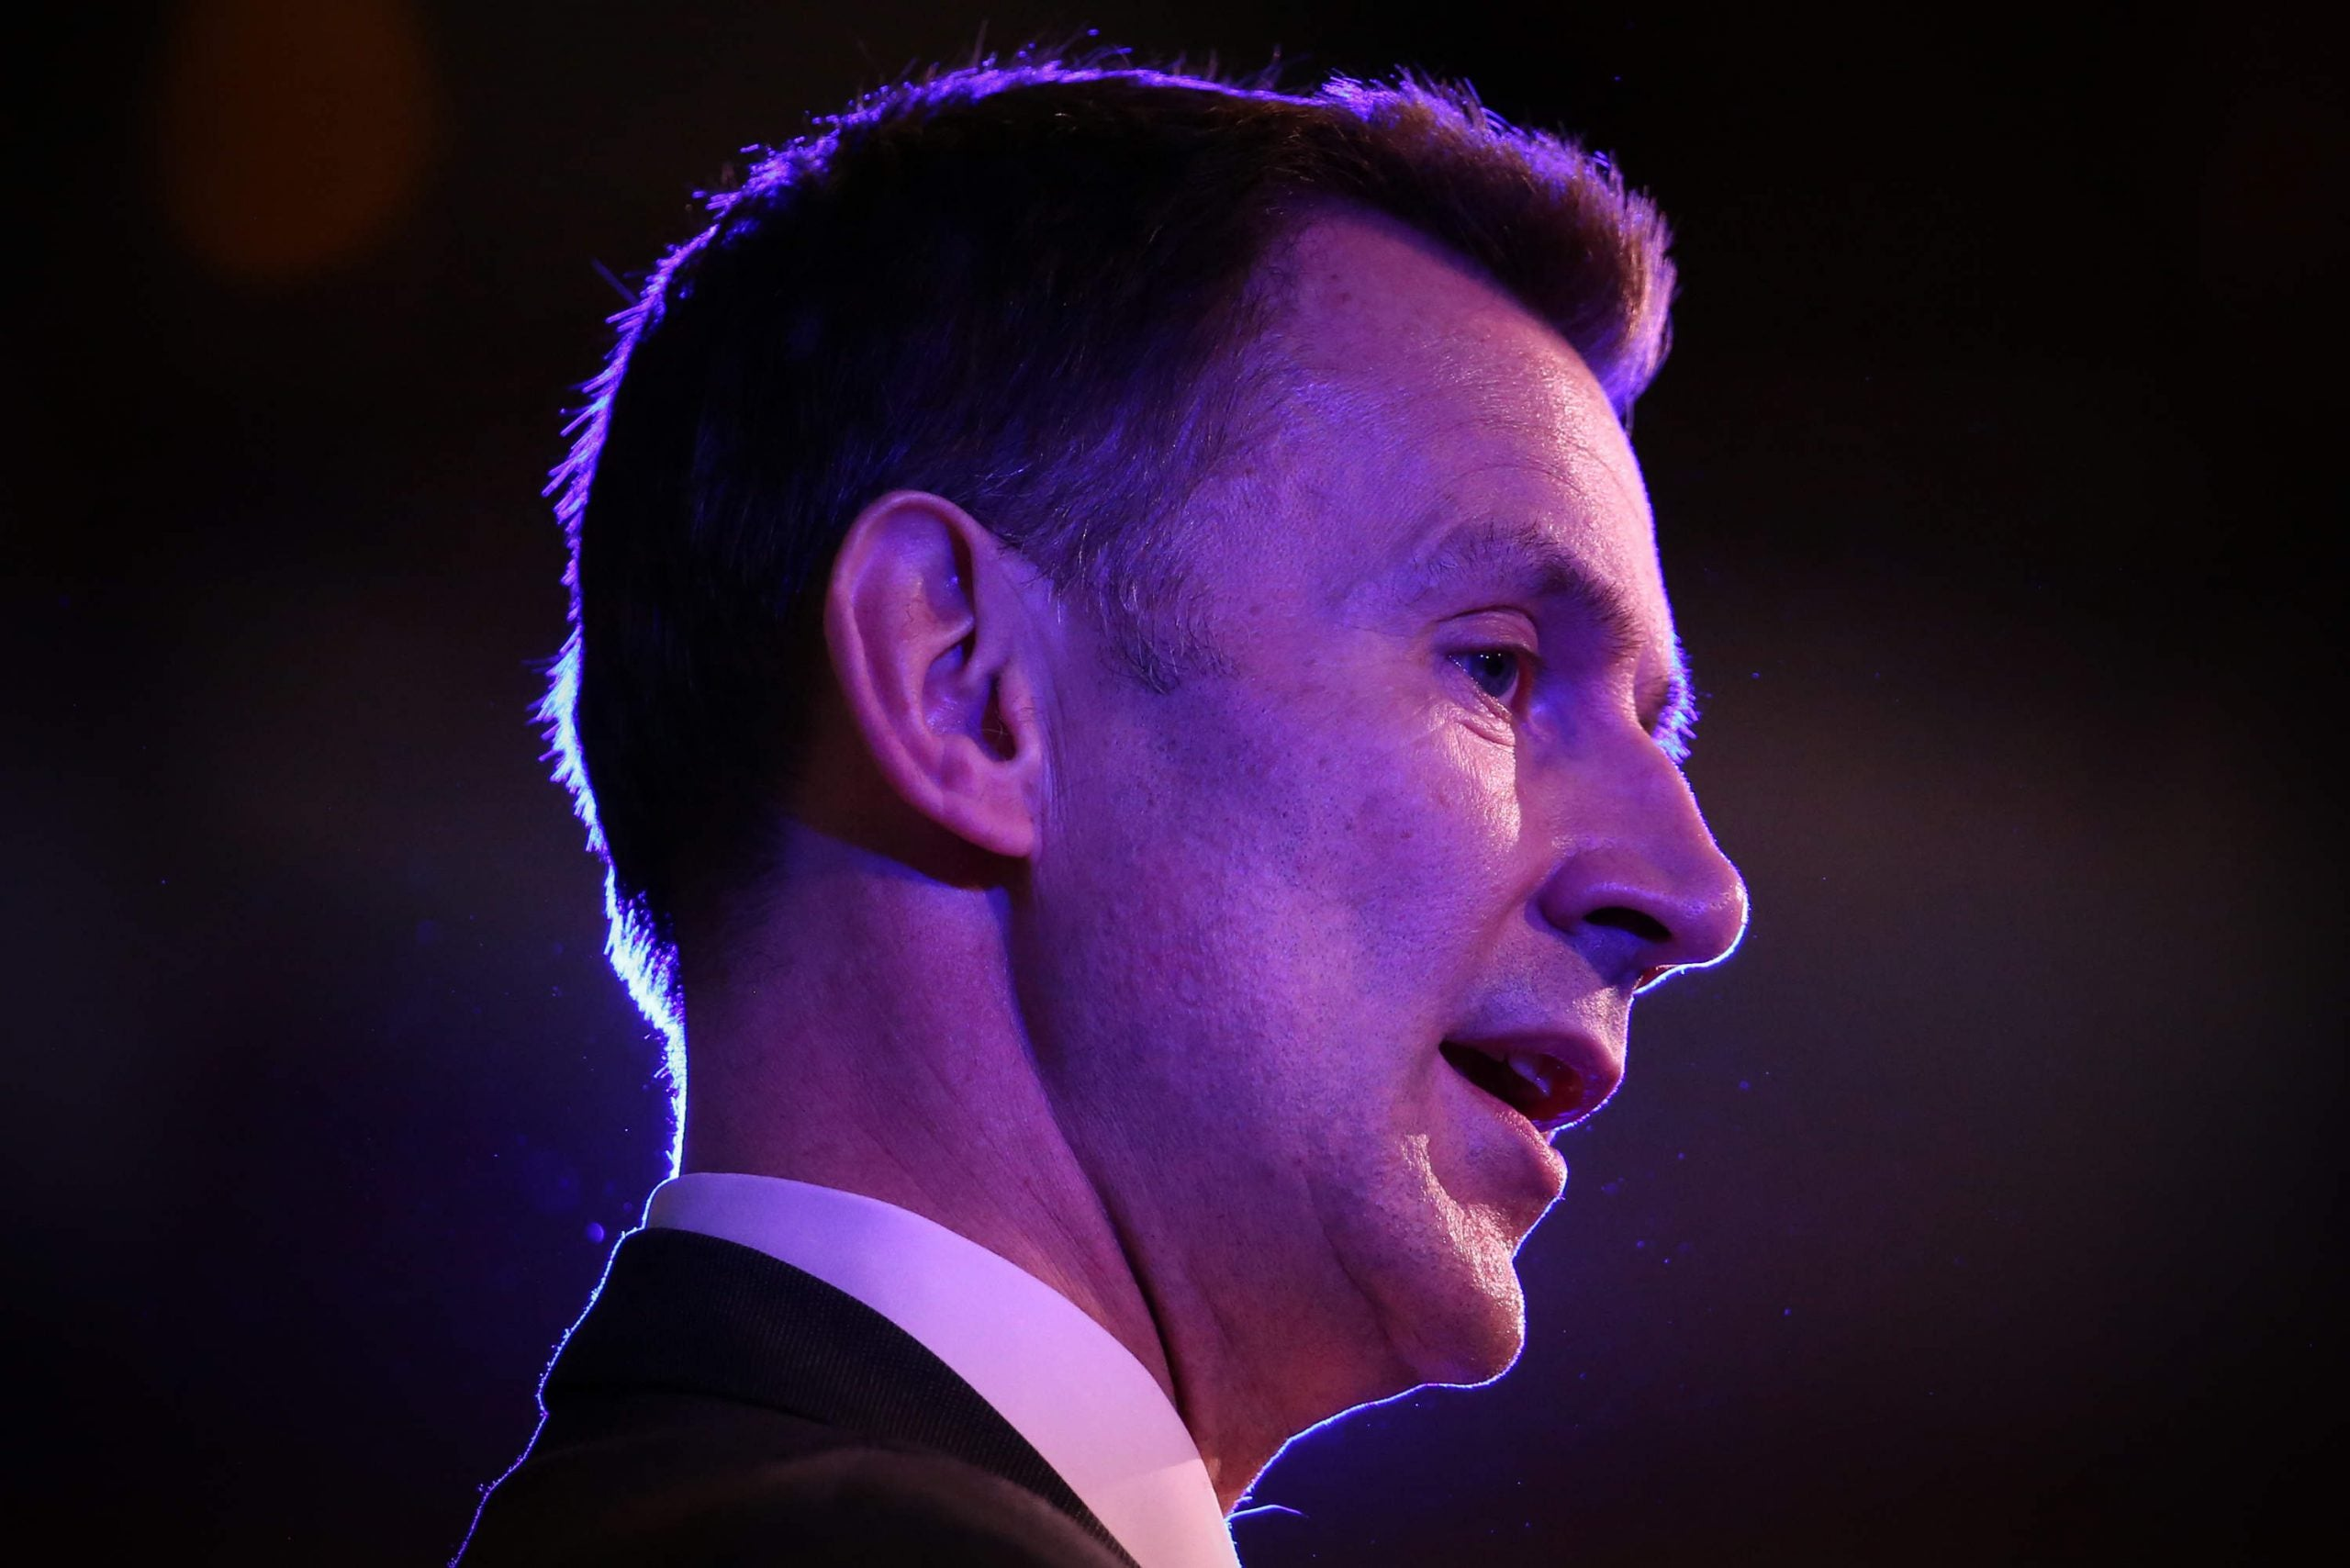 If Jeremy Hunt wants to blame someone for today's strike, he should look in the mirror